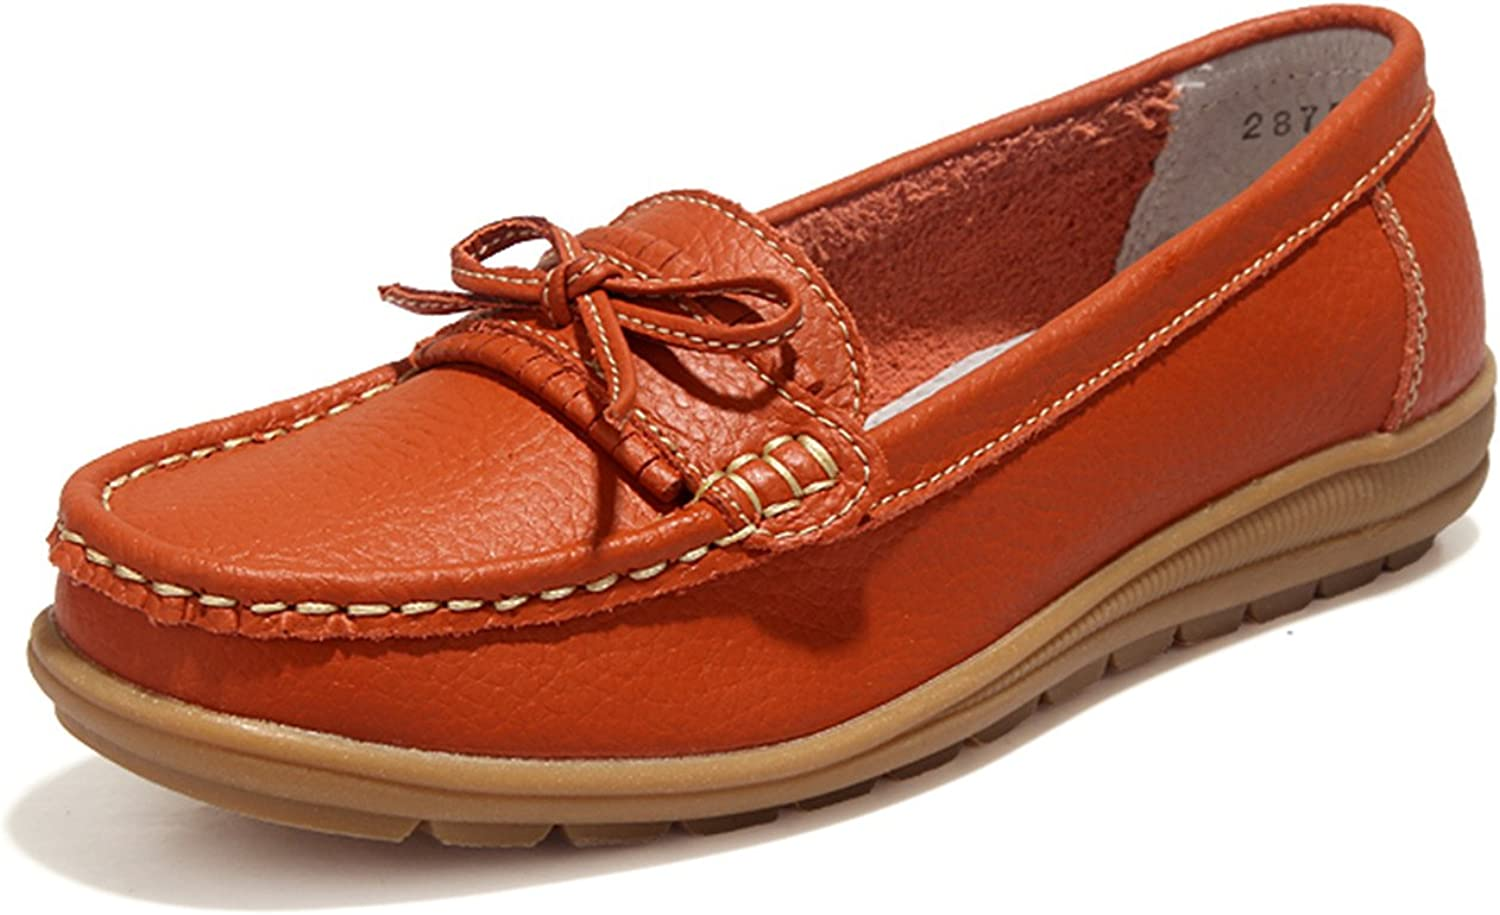 UNN Women Loafers Casual Moccasin Flats Slip On Boat shoes Anti-Skid for Driving Walking